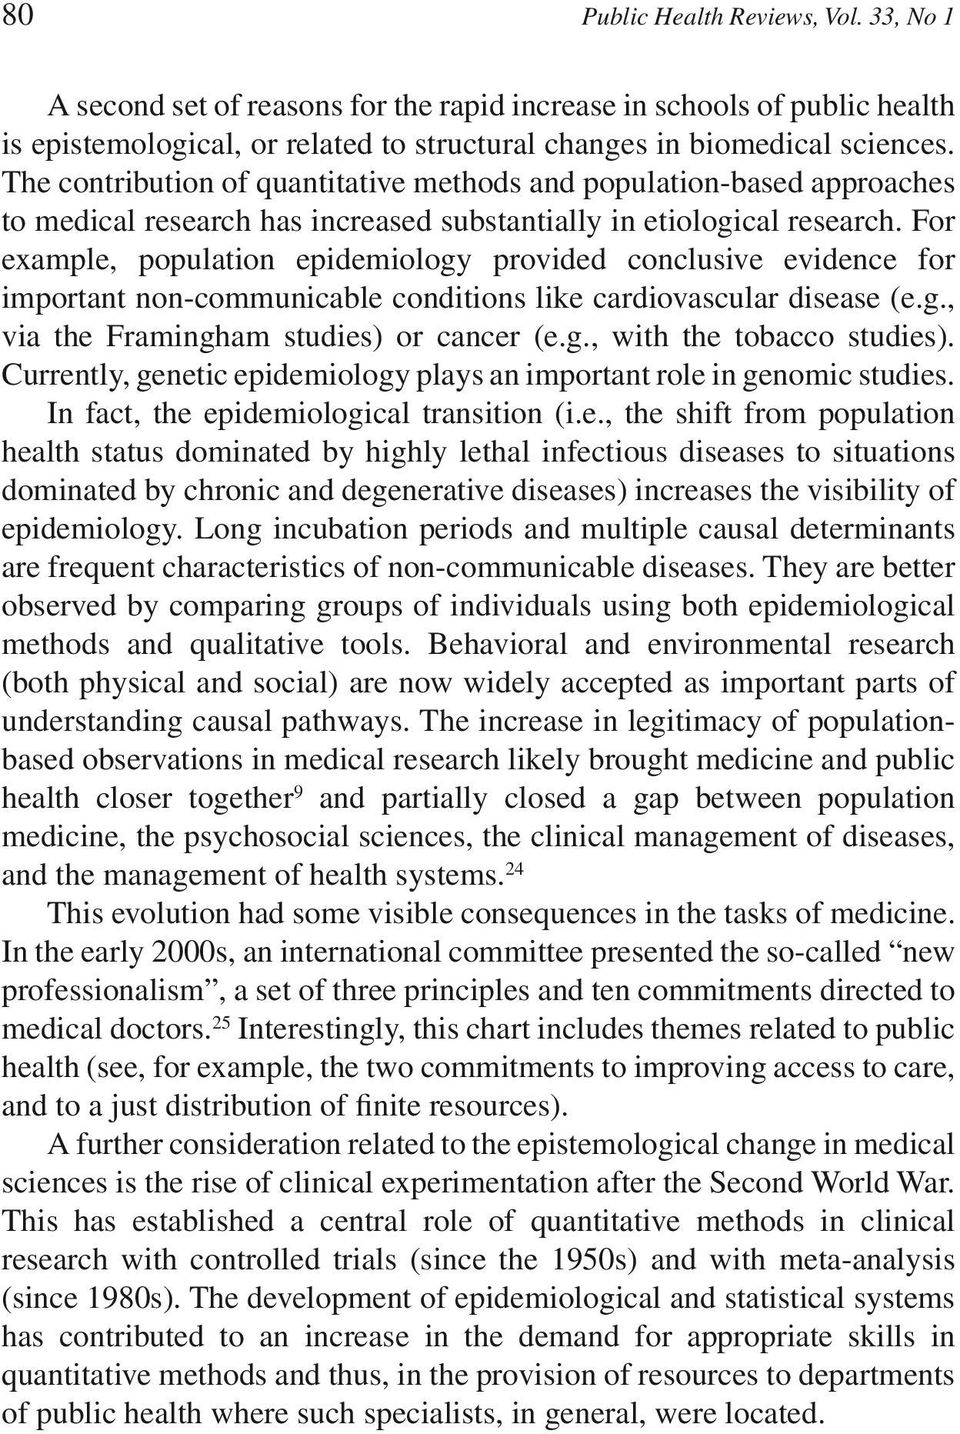 For example, population epidemiology provided conclusive evidence for important non-communicable conditions like cardiovascular disease (e.g., via the Framingham studies) or cancer (e.g., with the tobacco studies).